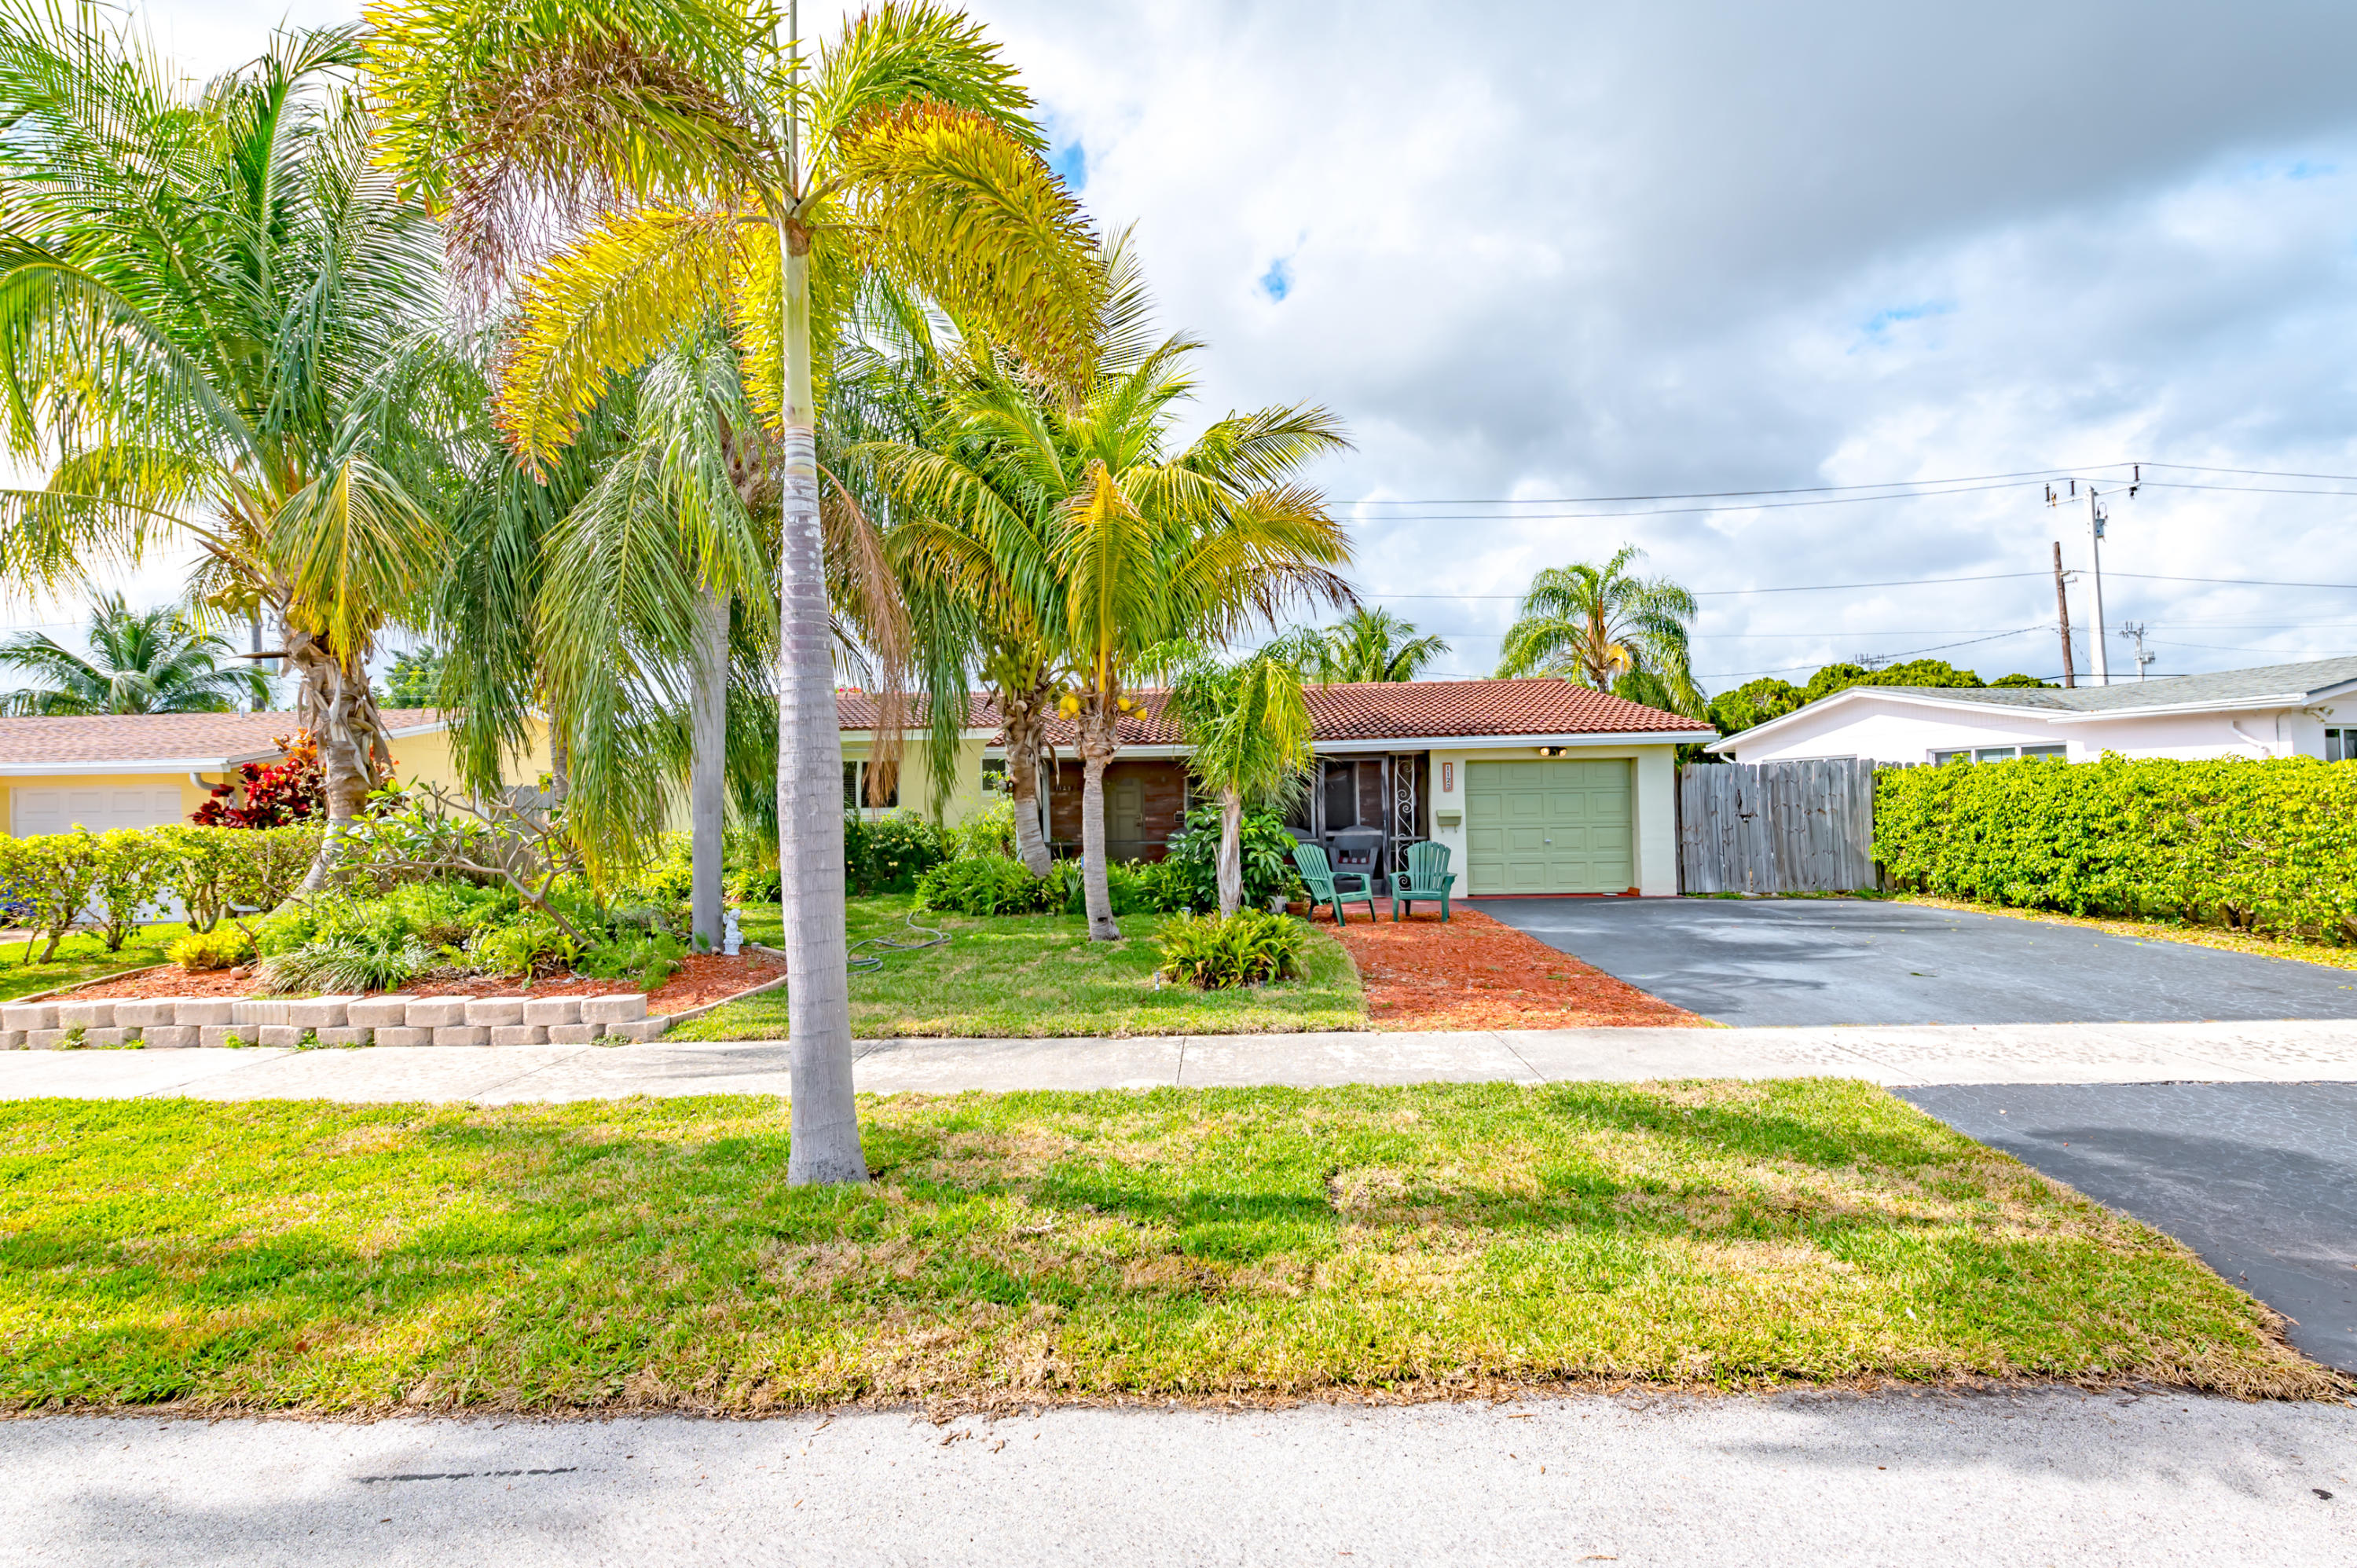 Home for sale in Shorewood Deerfield Beach Florida